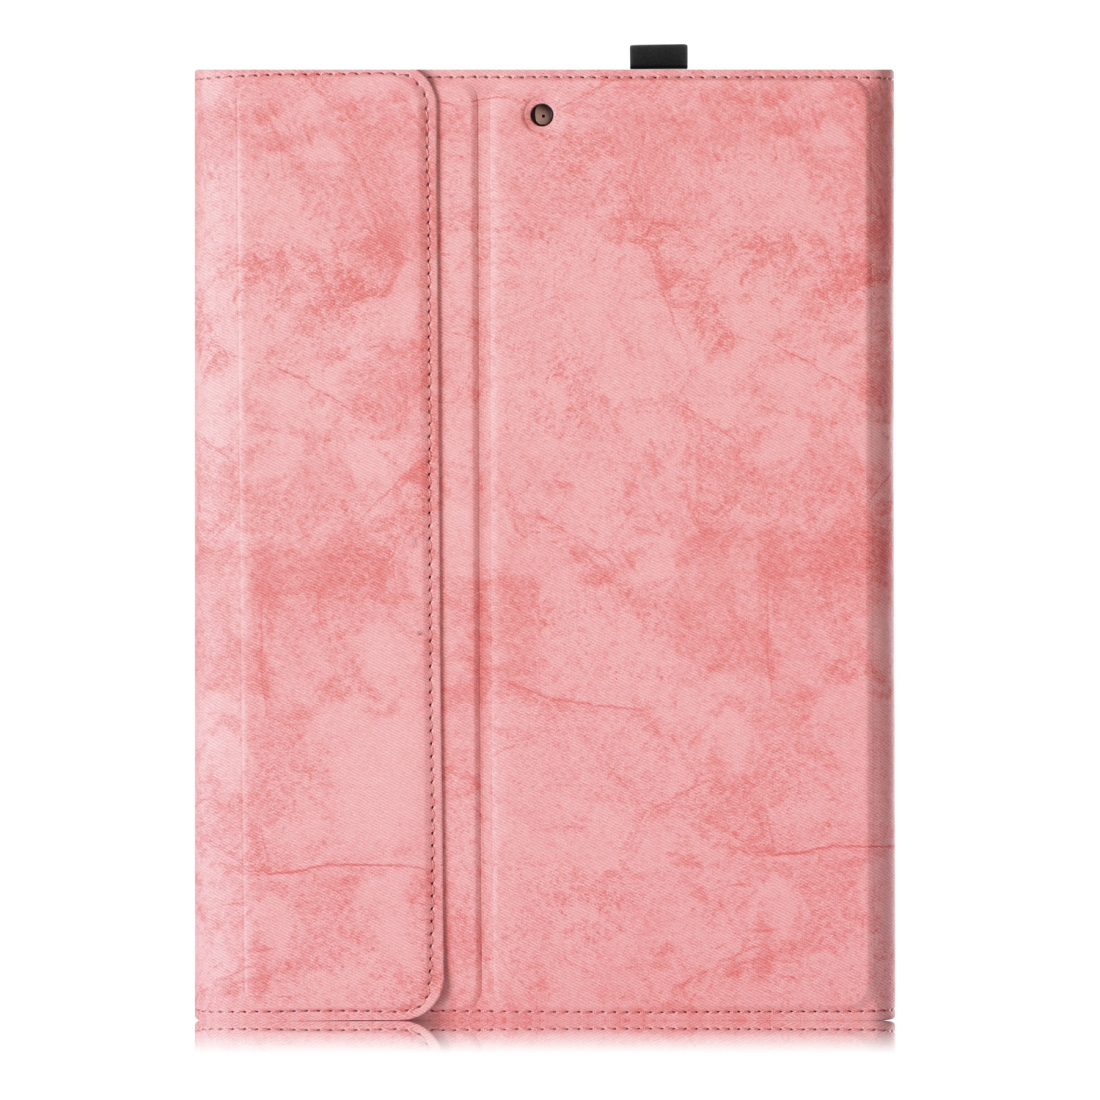 iPad Air 2 Case For iPad Air /Air 2 (2019), Leather Case Without Keyboard (Pink)